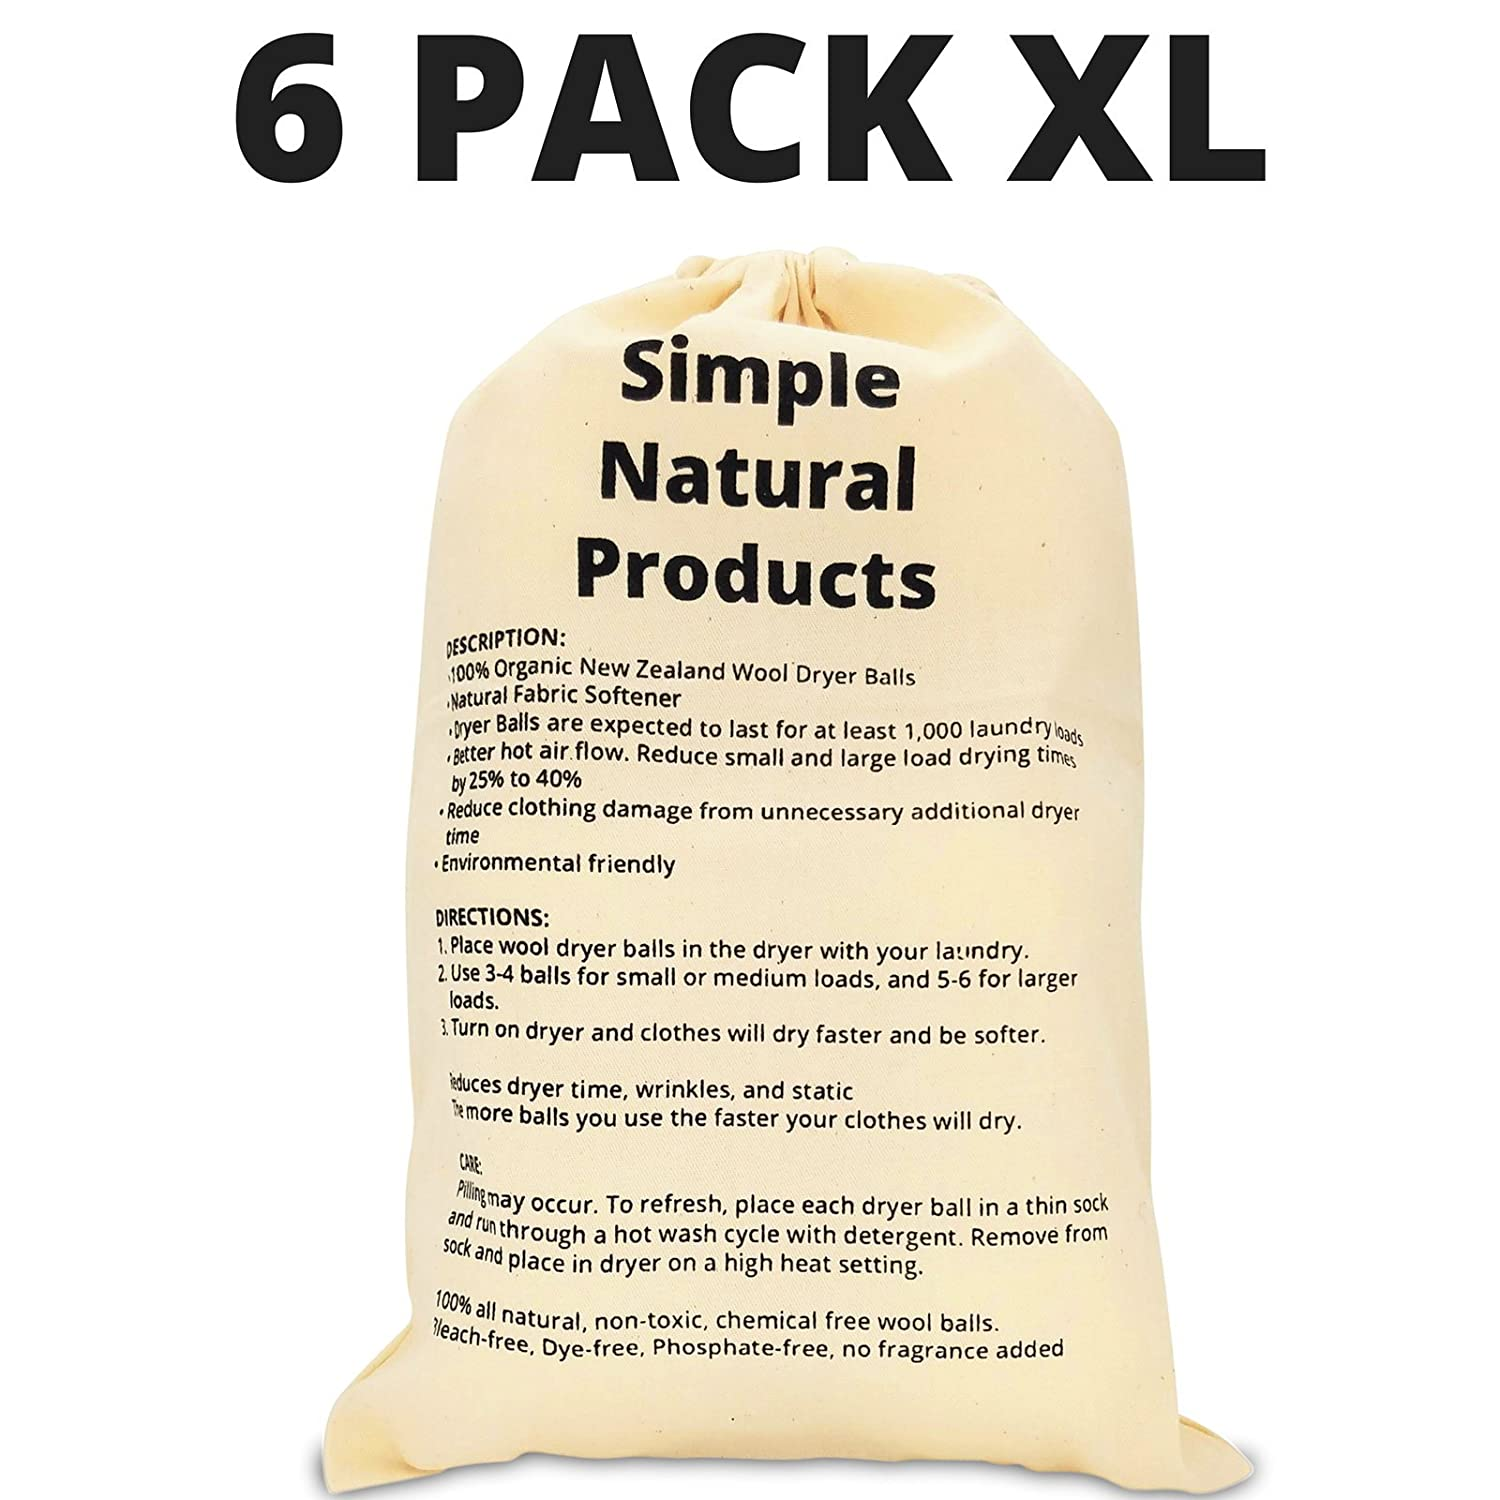 Amazon.com: Simple Natural Products Wool Dryer Balls Handmade (6 XL Pack)  Natural Fabric Softener Reusable and Eco Friendly 3000 Cycle Rating: Home &  ...